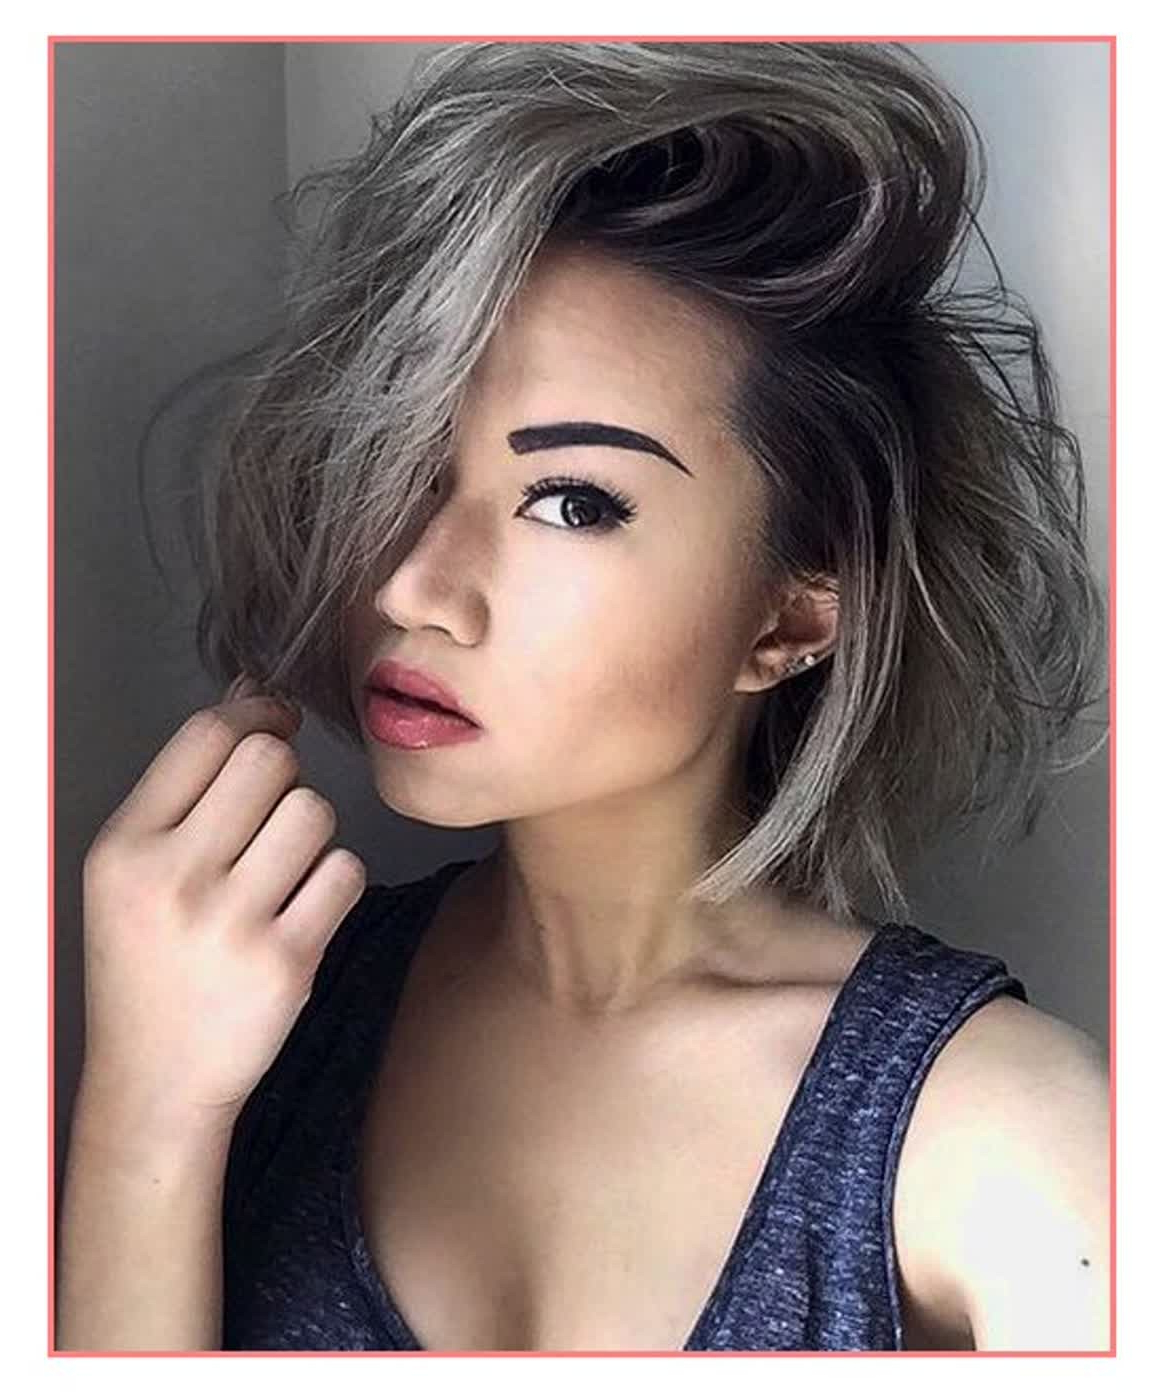 Short Hairstyles For Gray Hair | Uphairstyle Pertaining To Gray Hair Short Hairstyles (View 14 of 25)